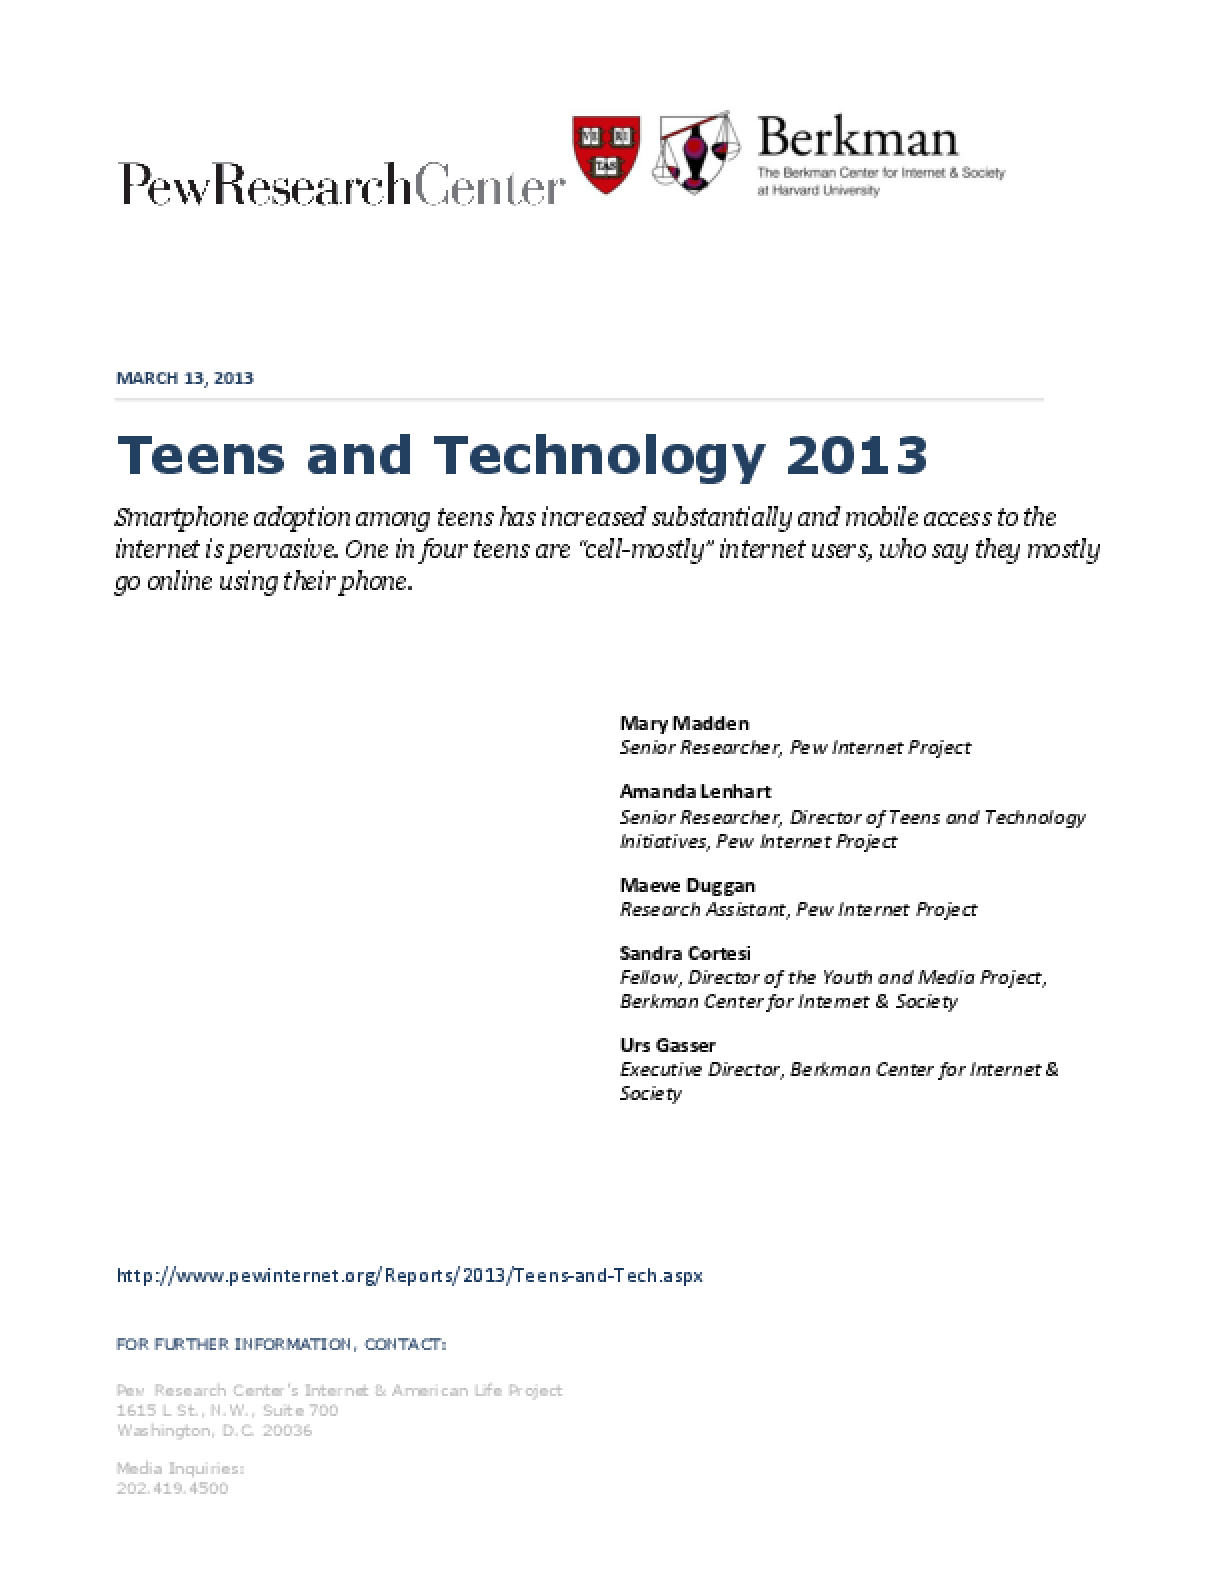 Teens and Technology 2013